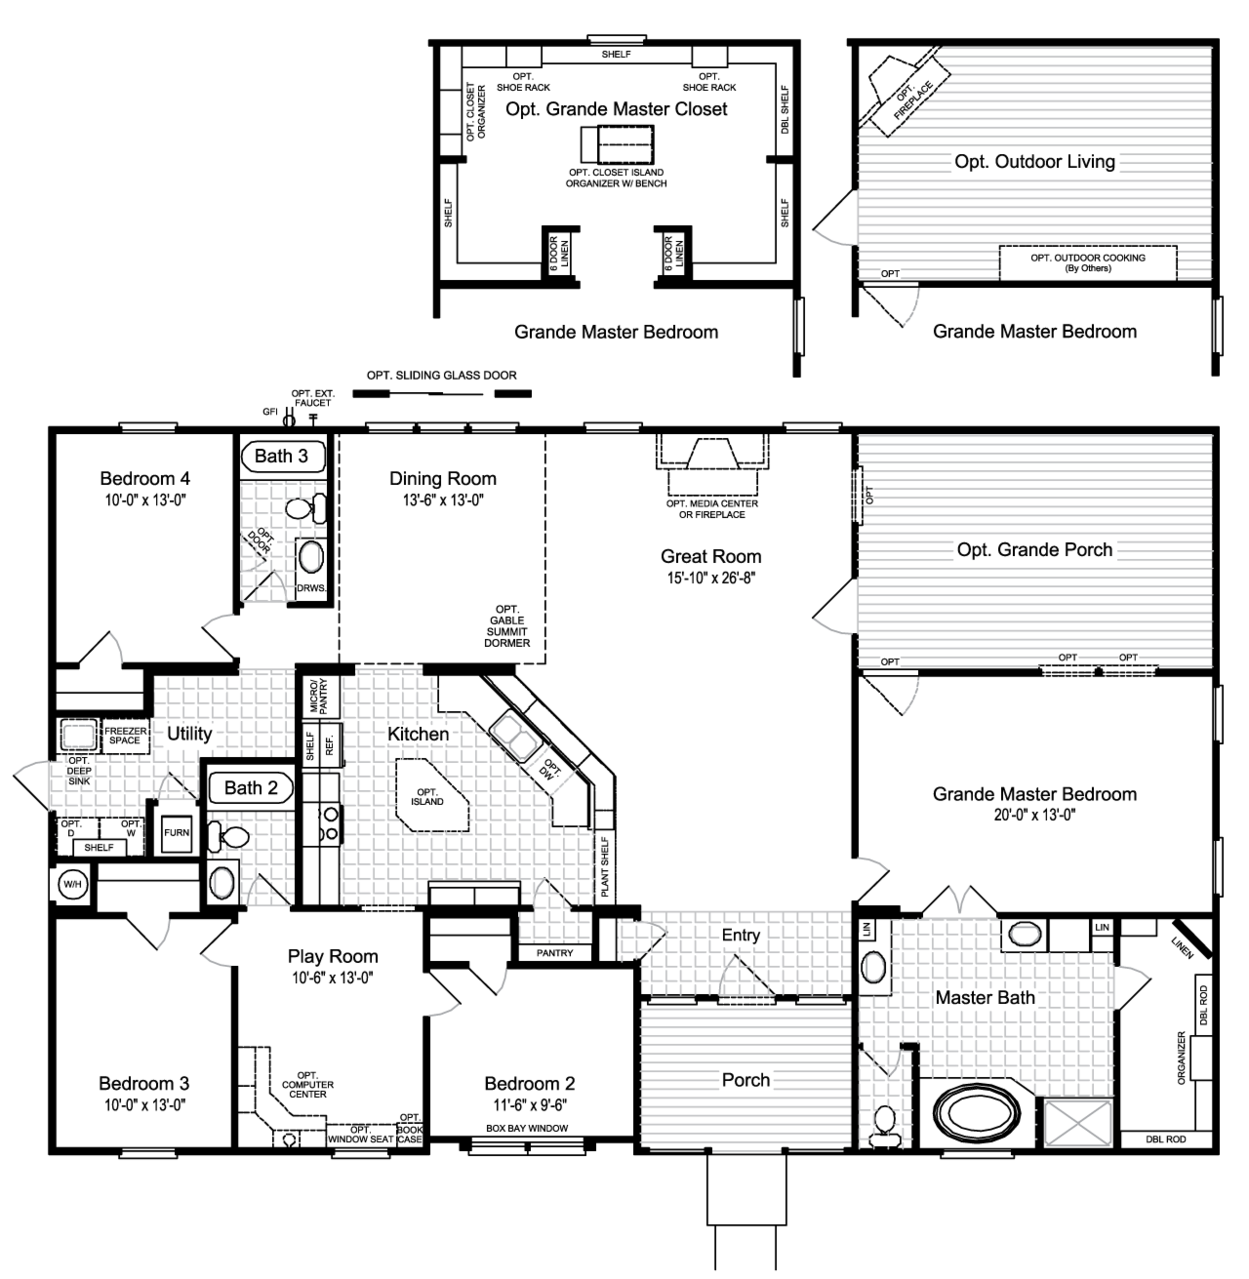 View the hacienda ii floor plan for a 2580 sq ft palm Plans home